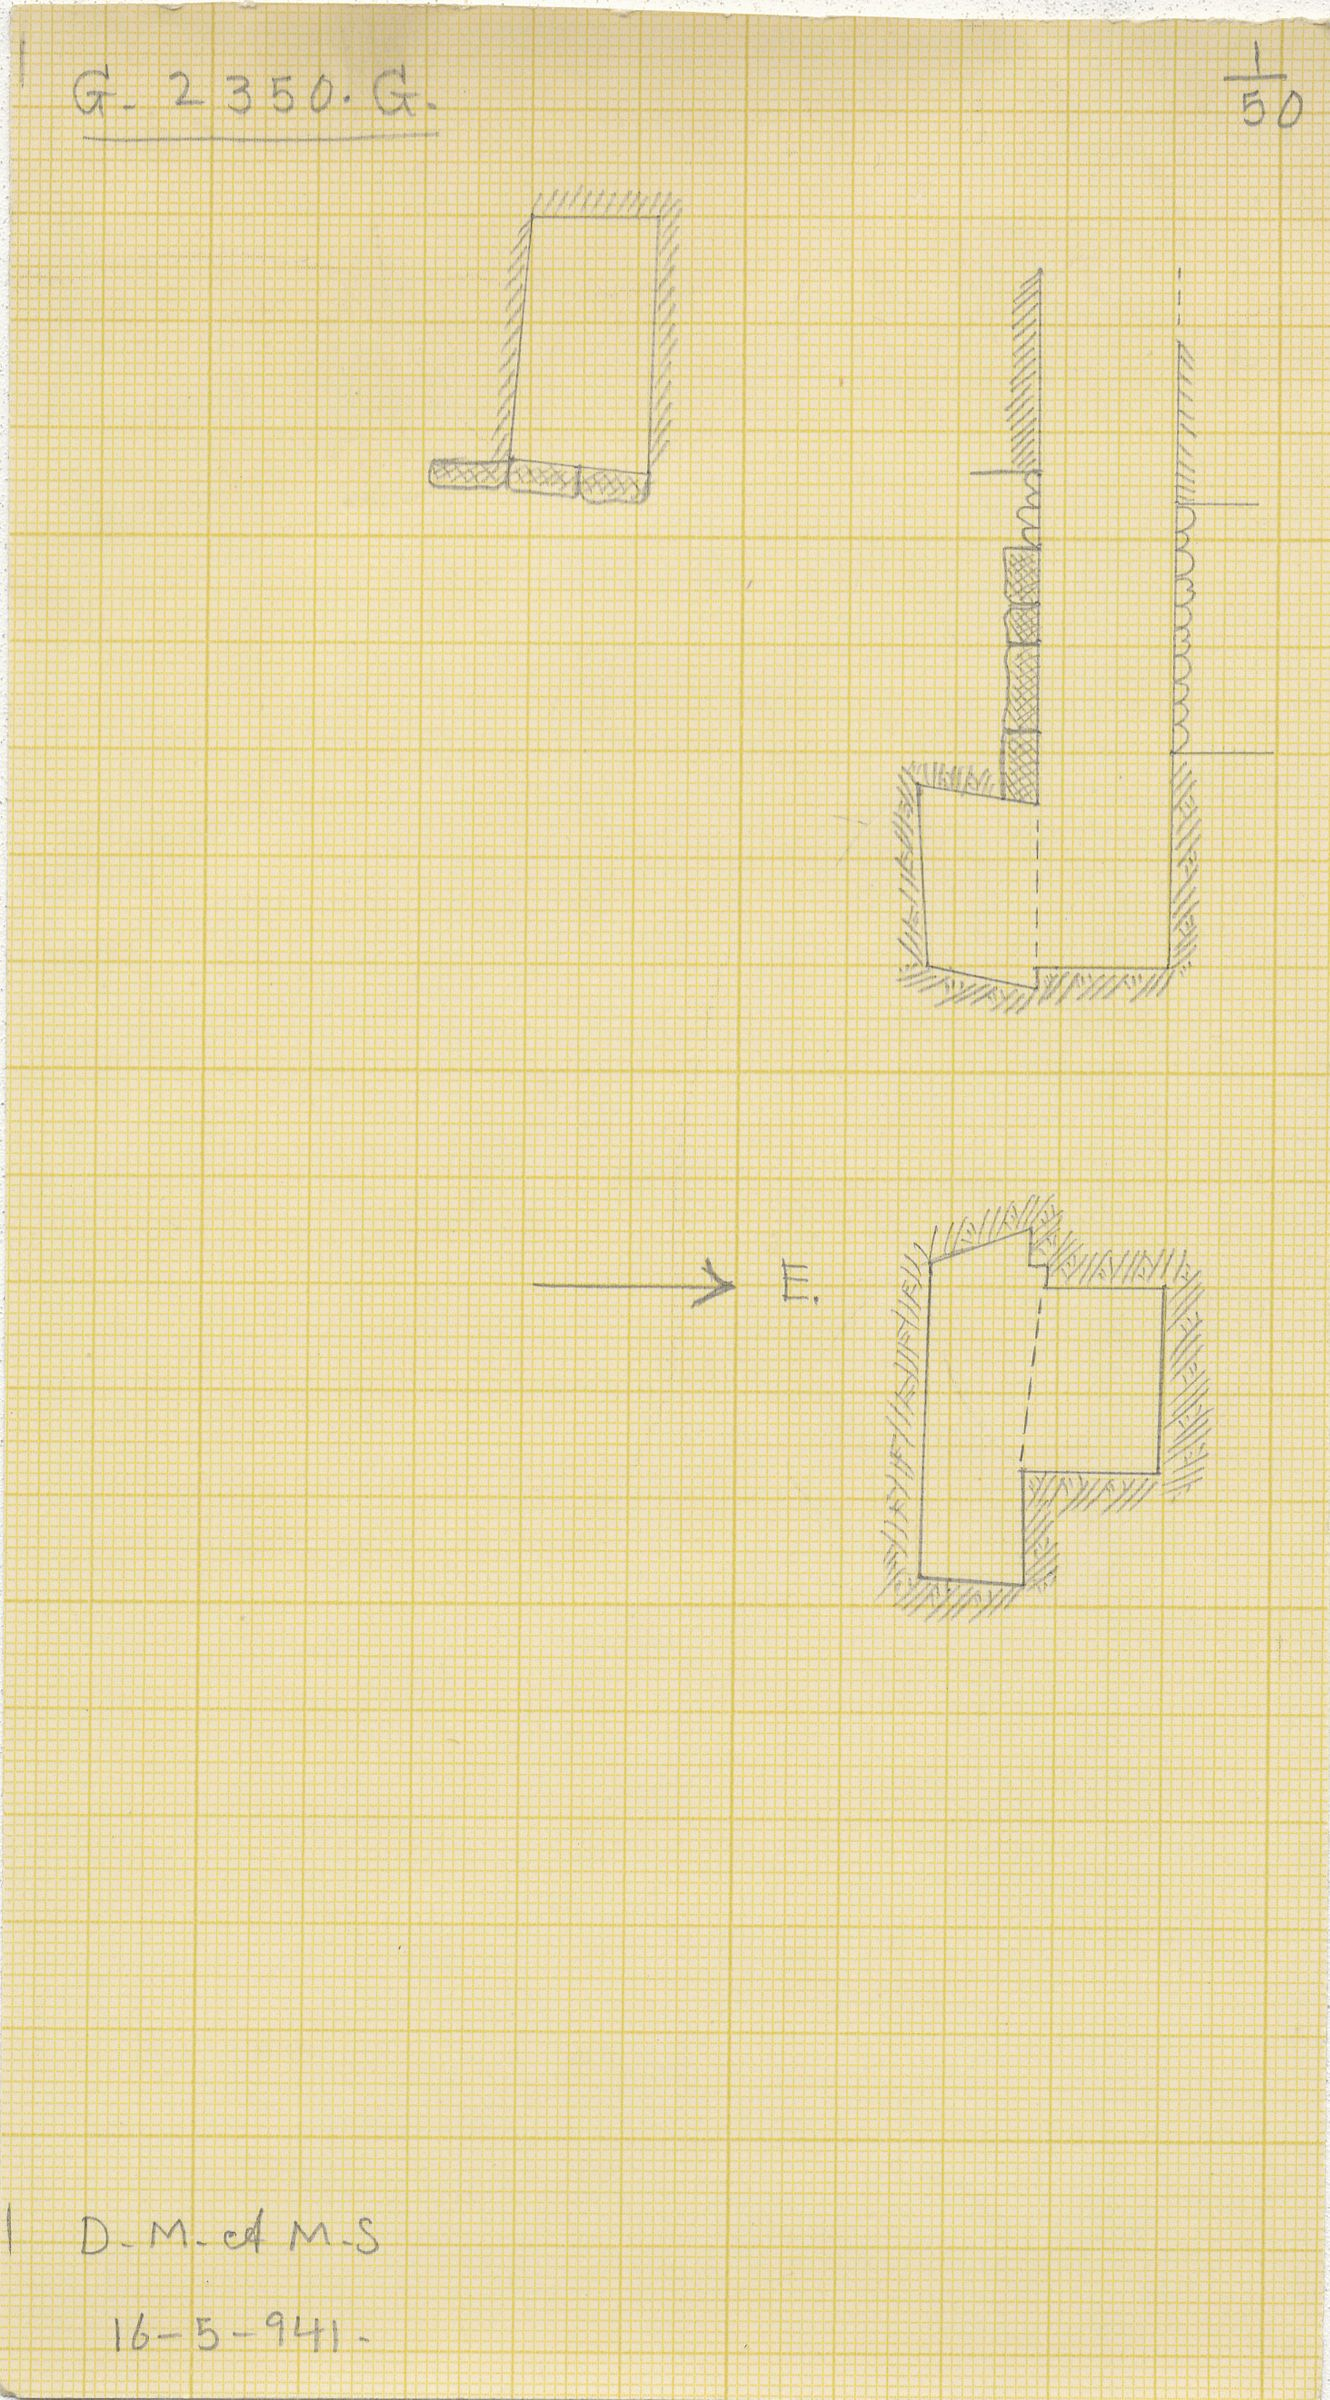 Maps and plans: G 2350 = G 5290, Shaft G